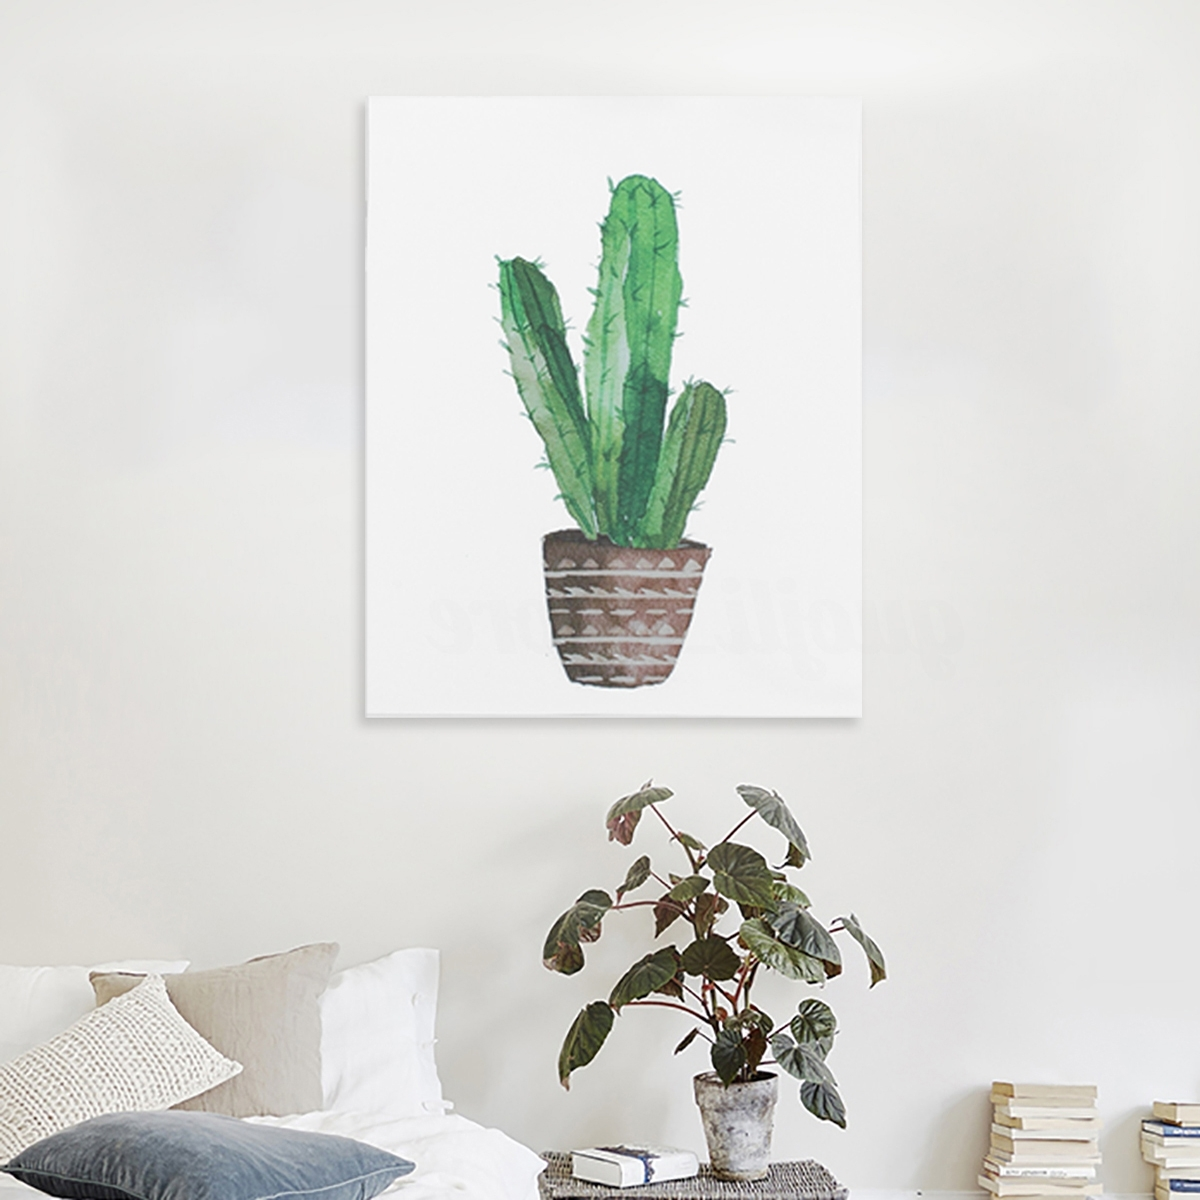 Modern Watercolor Green Cactus Plant Canvas Painting Art Print Home With Regard To Most Current Cactus Wall Art (View 10 of 15)